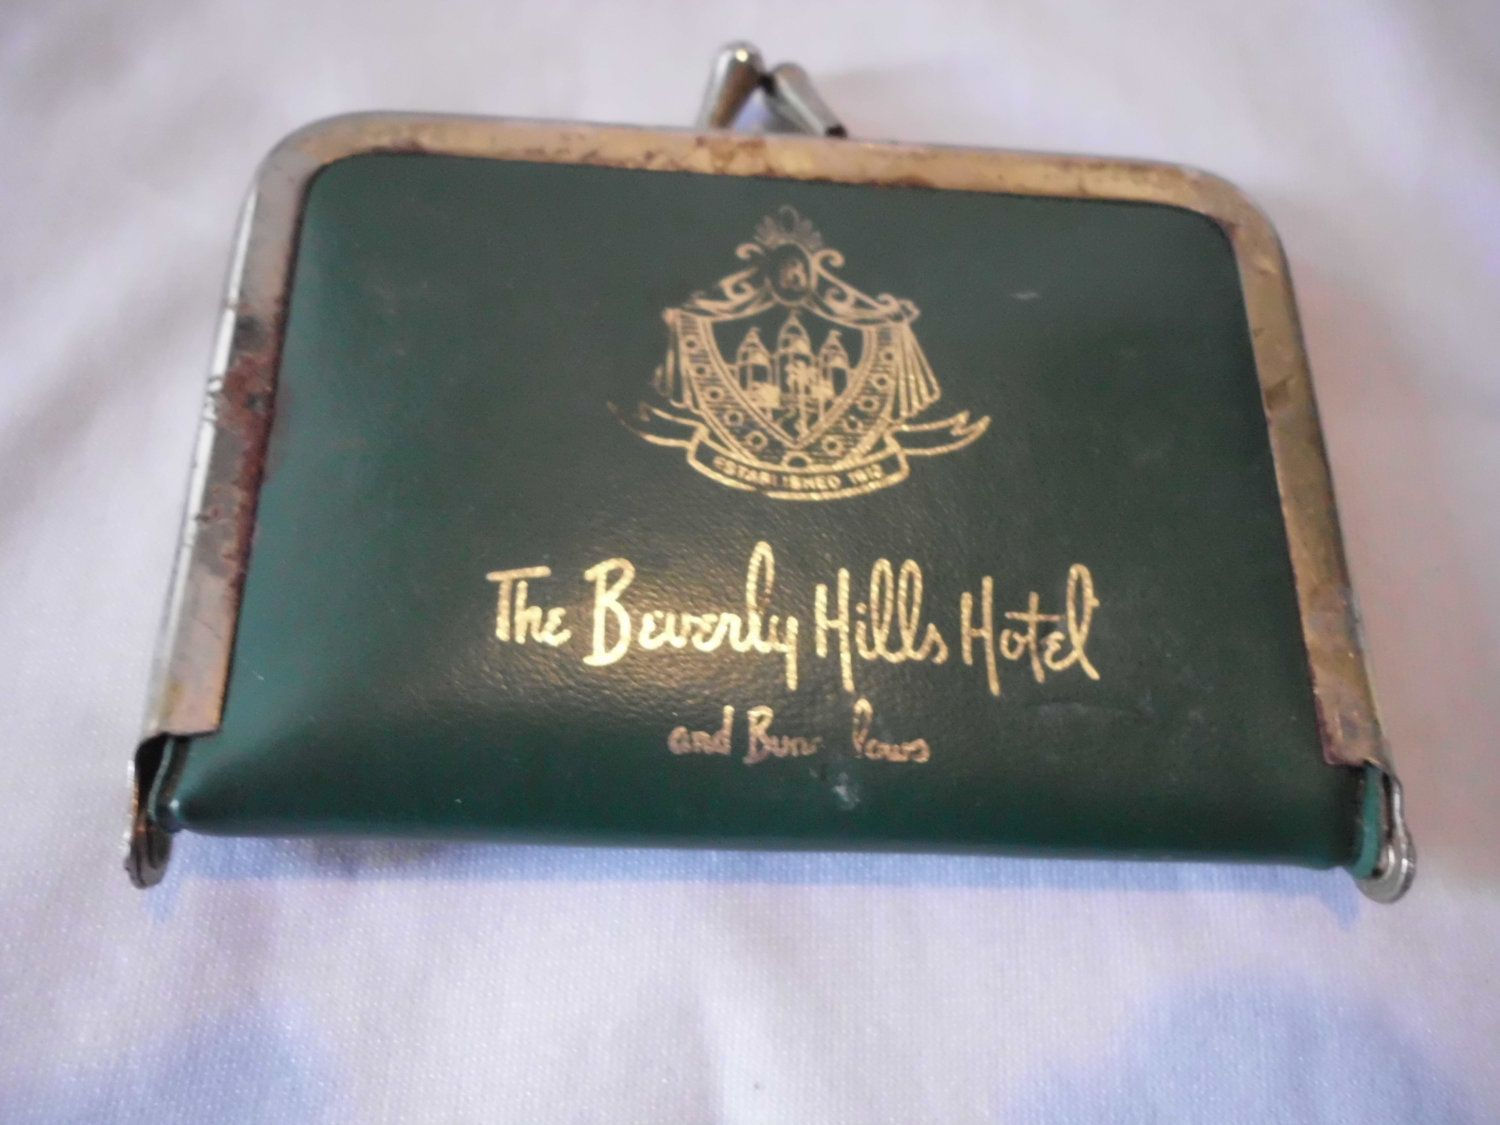 Vintage Beverly Hills Hotel Sewing Kit 1950s. 18.00